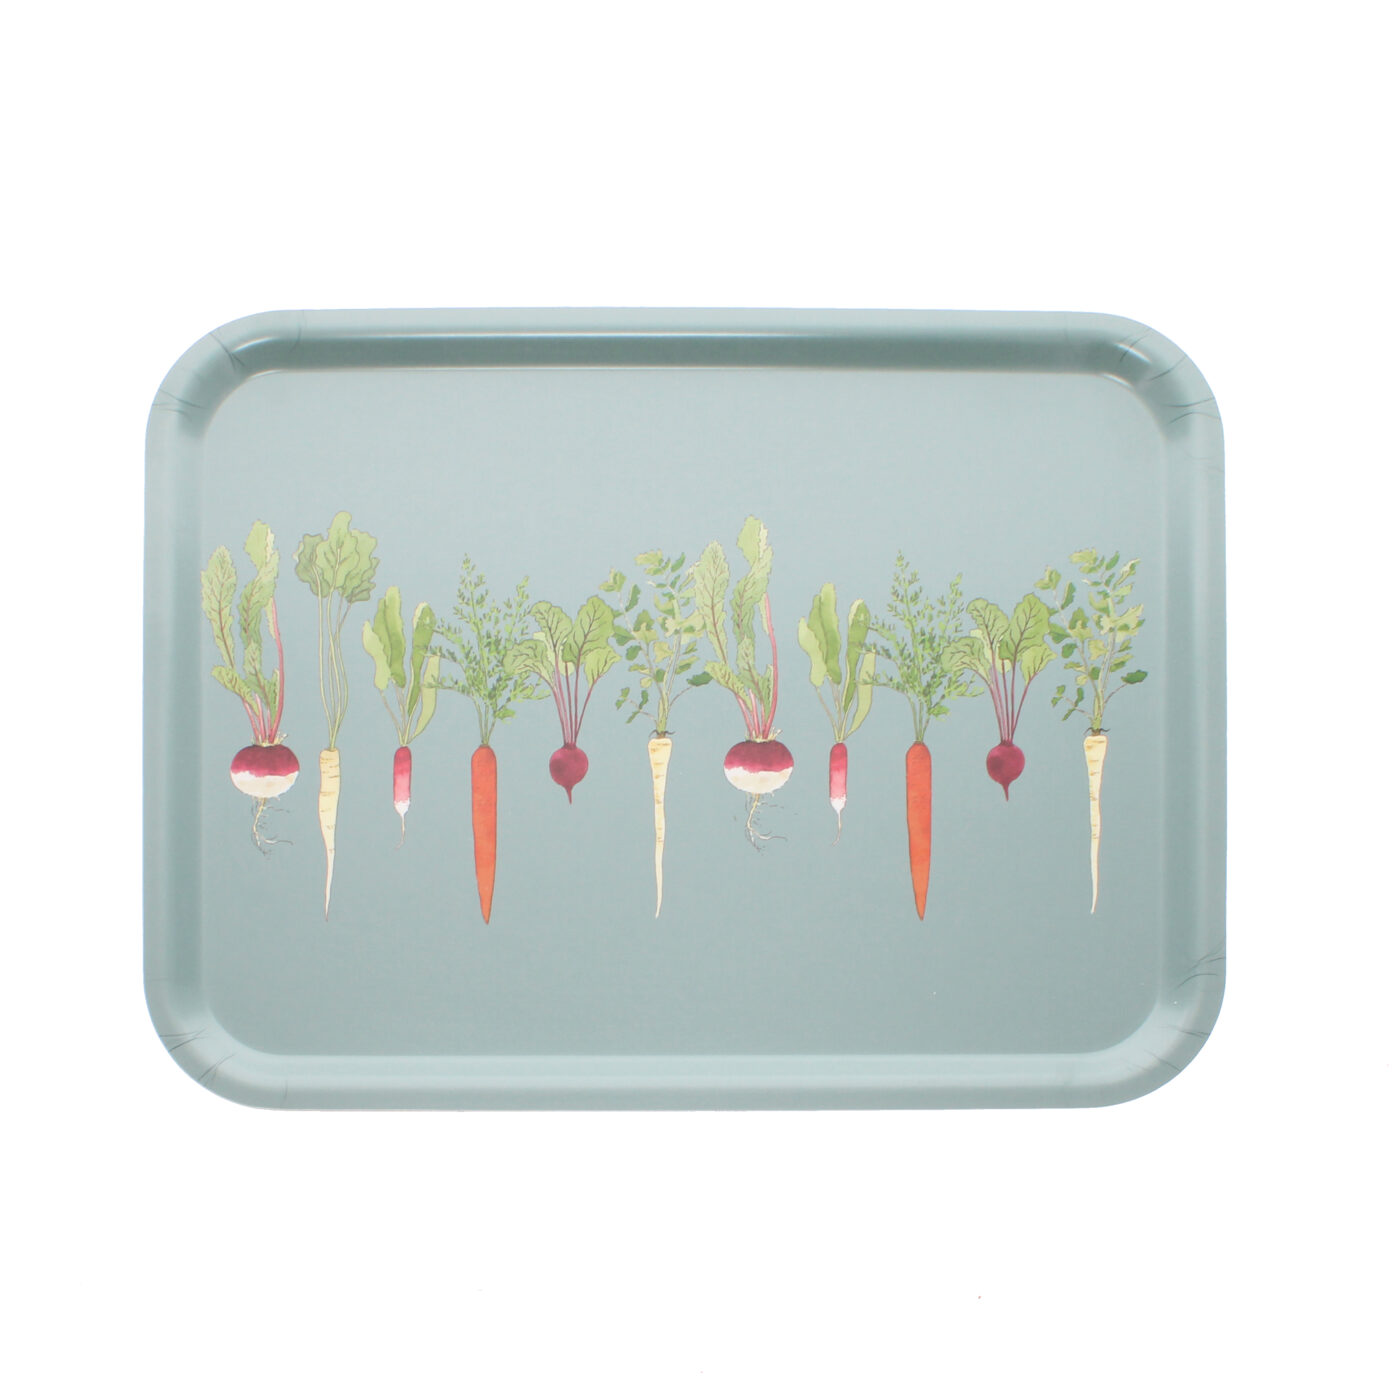 sophie allport home grown tray